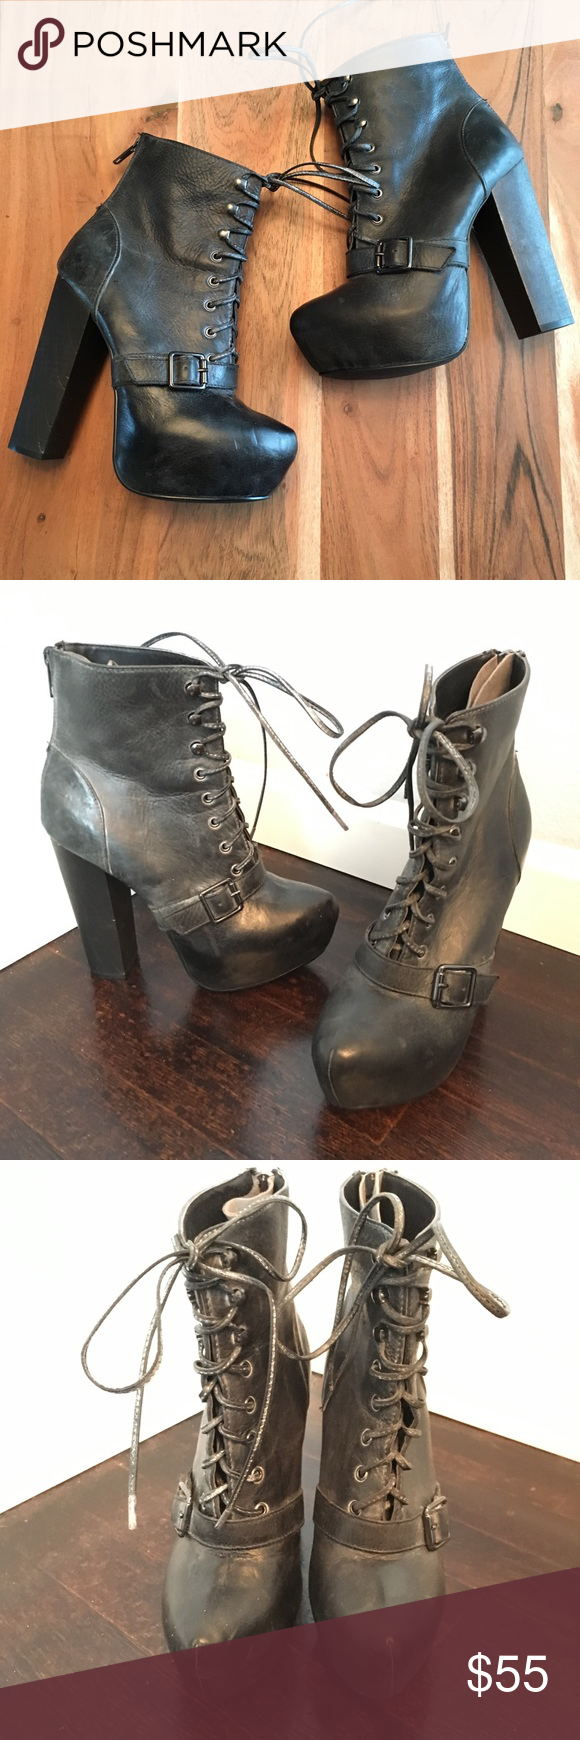 f4ee39358d9 Steve Madden Carnaby platform ankle boots Black leather with wood ...